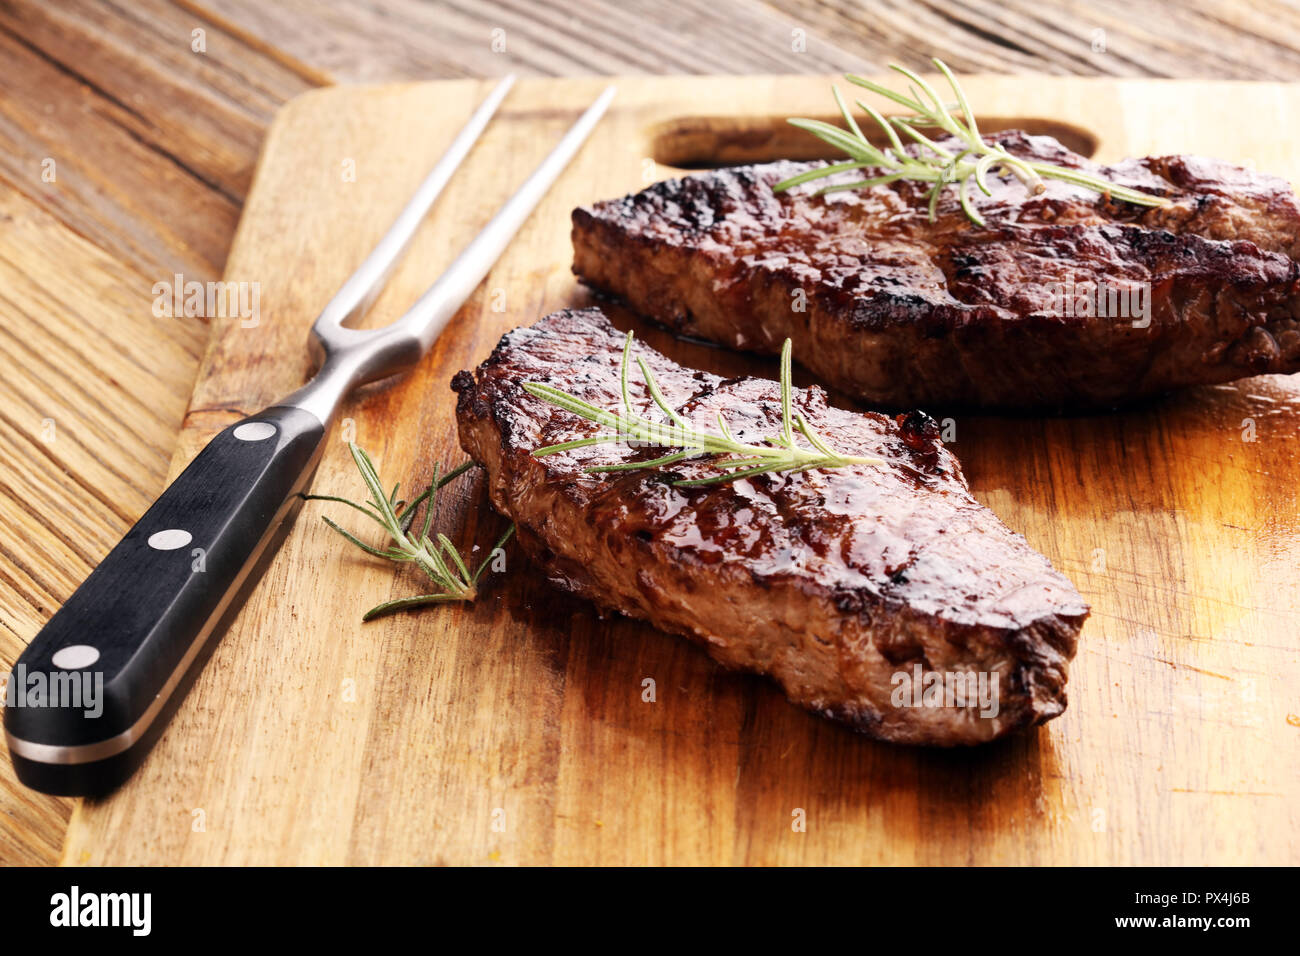 Barbecue Rib Eye Steak or rump steak - Dry Aged Wagyu